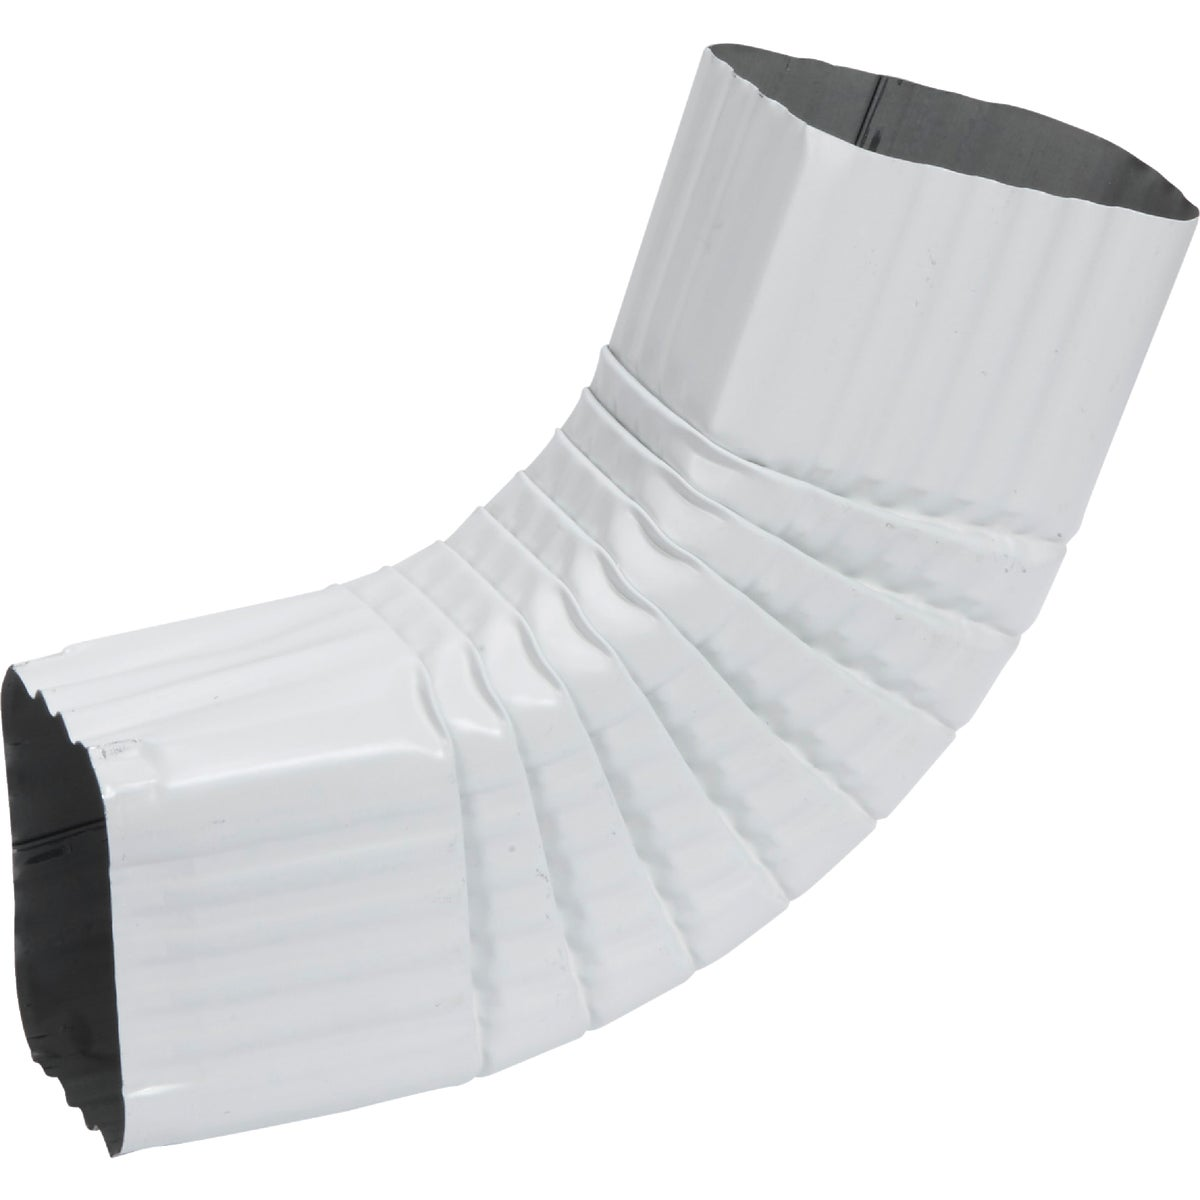 2X3 WHT B-ELBOW - 33065 by Amerimax Home Prod